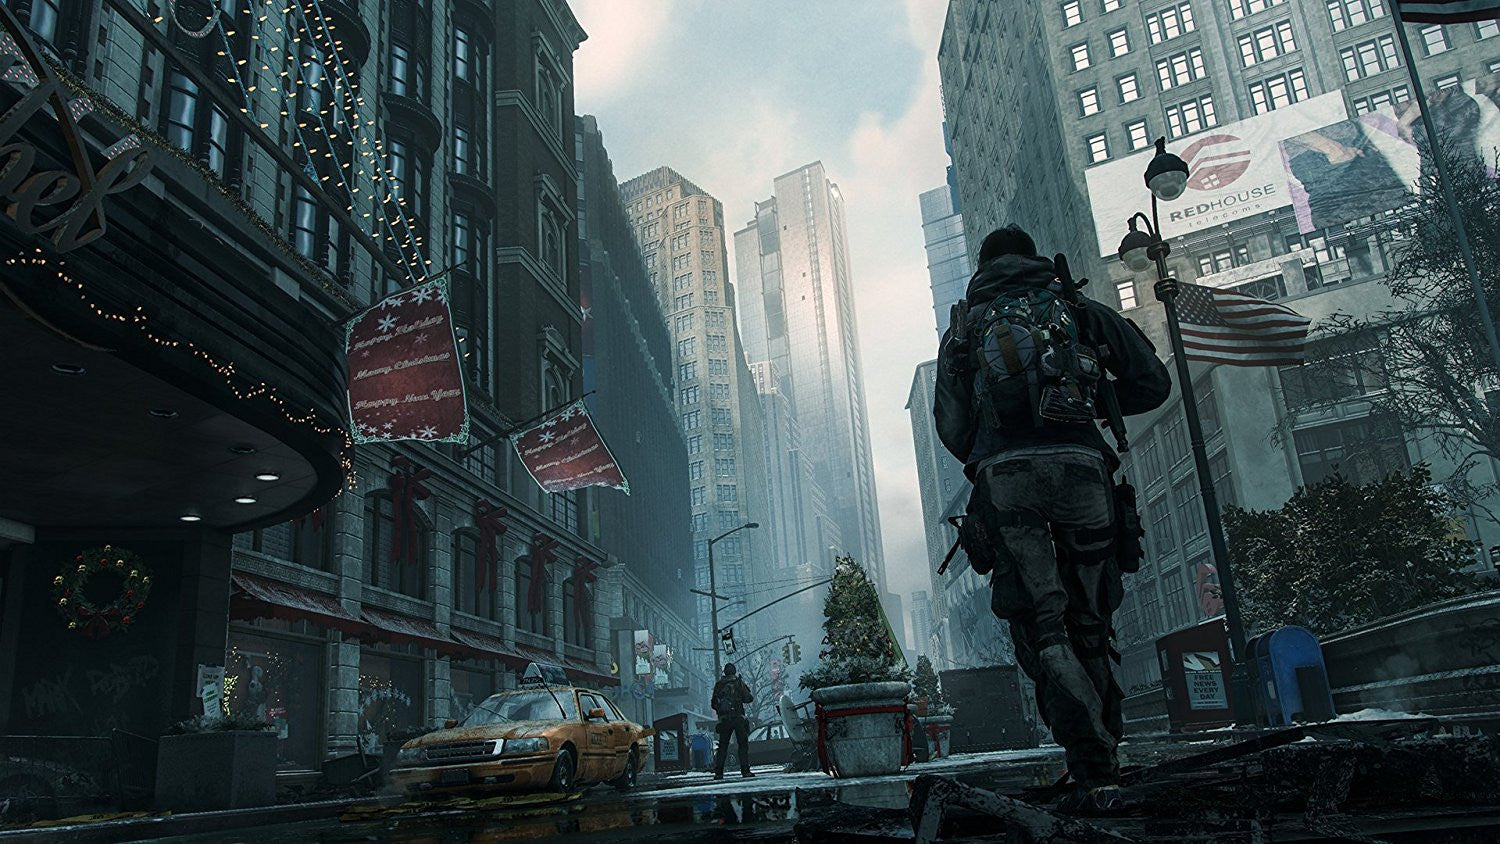 Tom Clancy's The Division PS4 - Video Games by UBI Soft The Chelsea Gamer